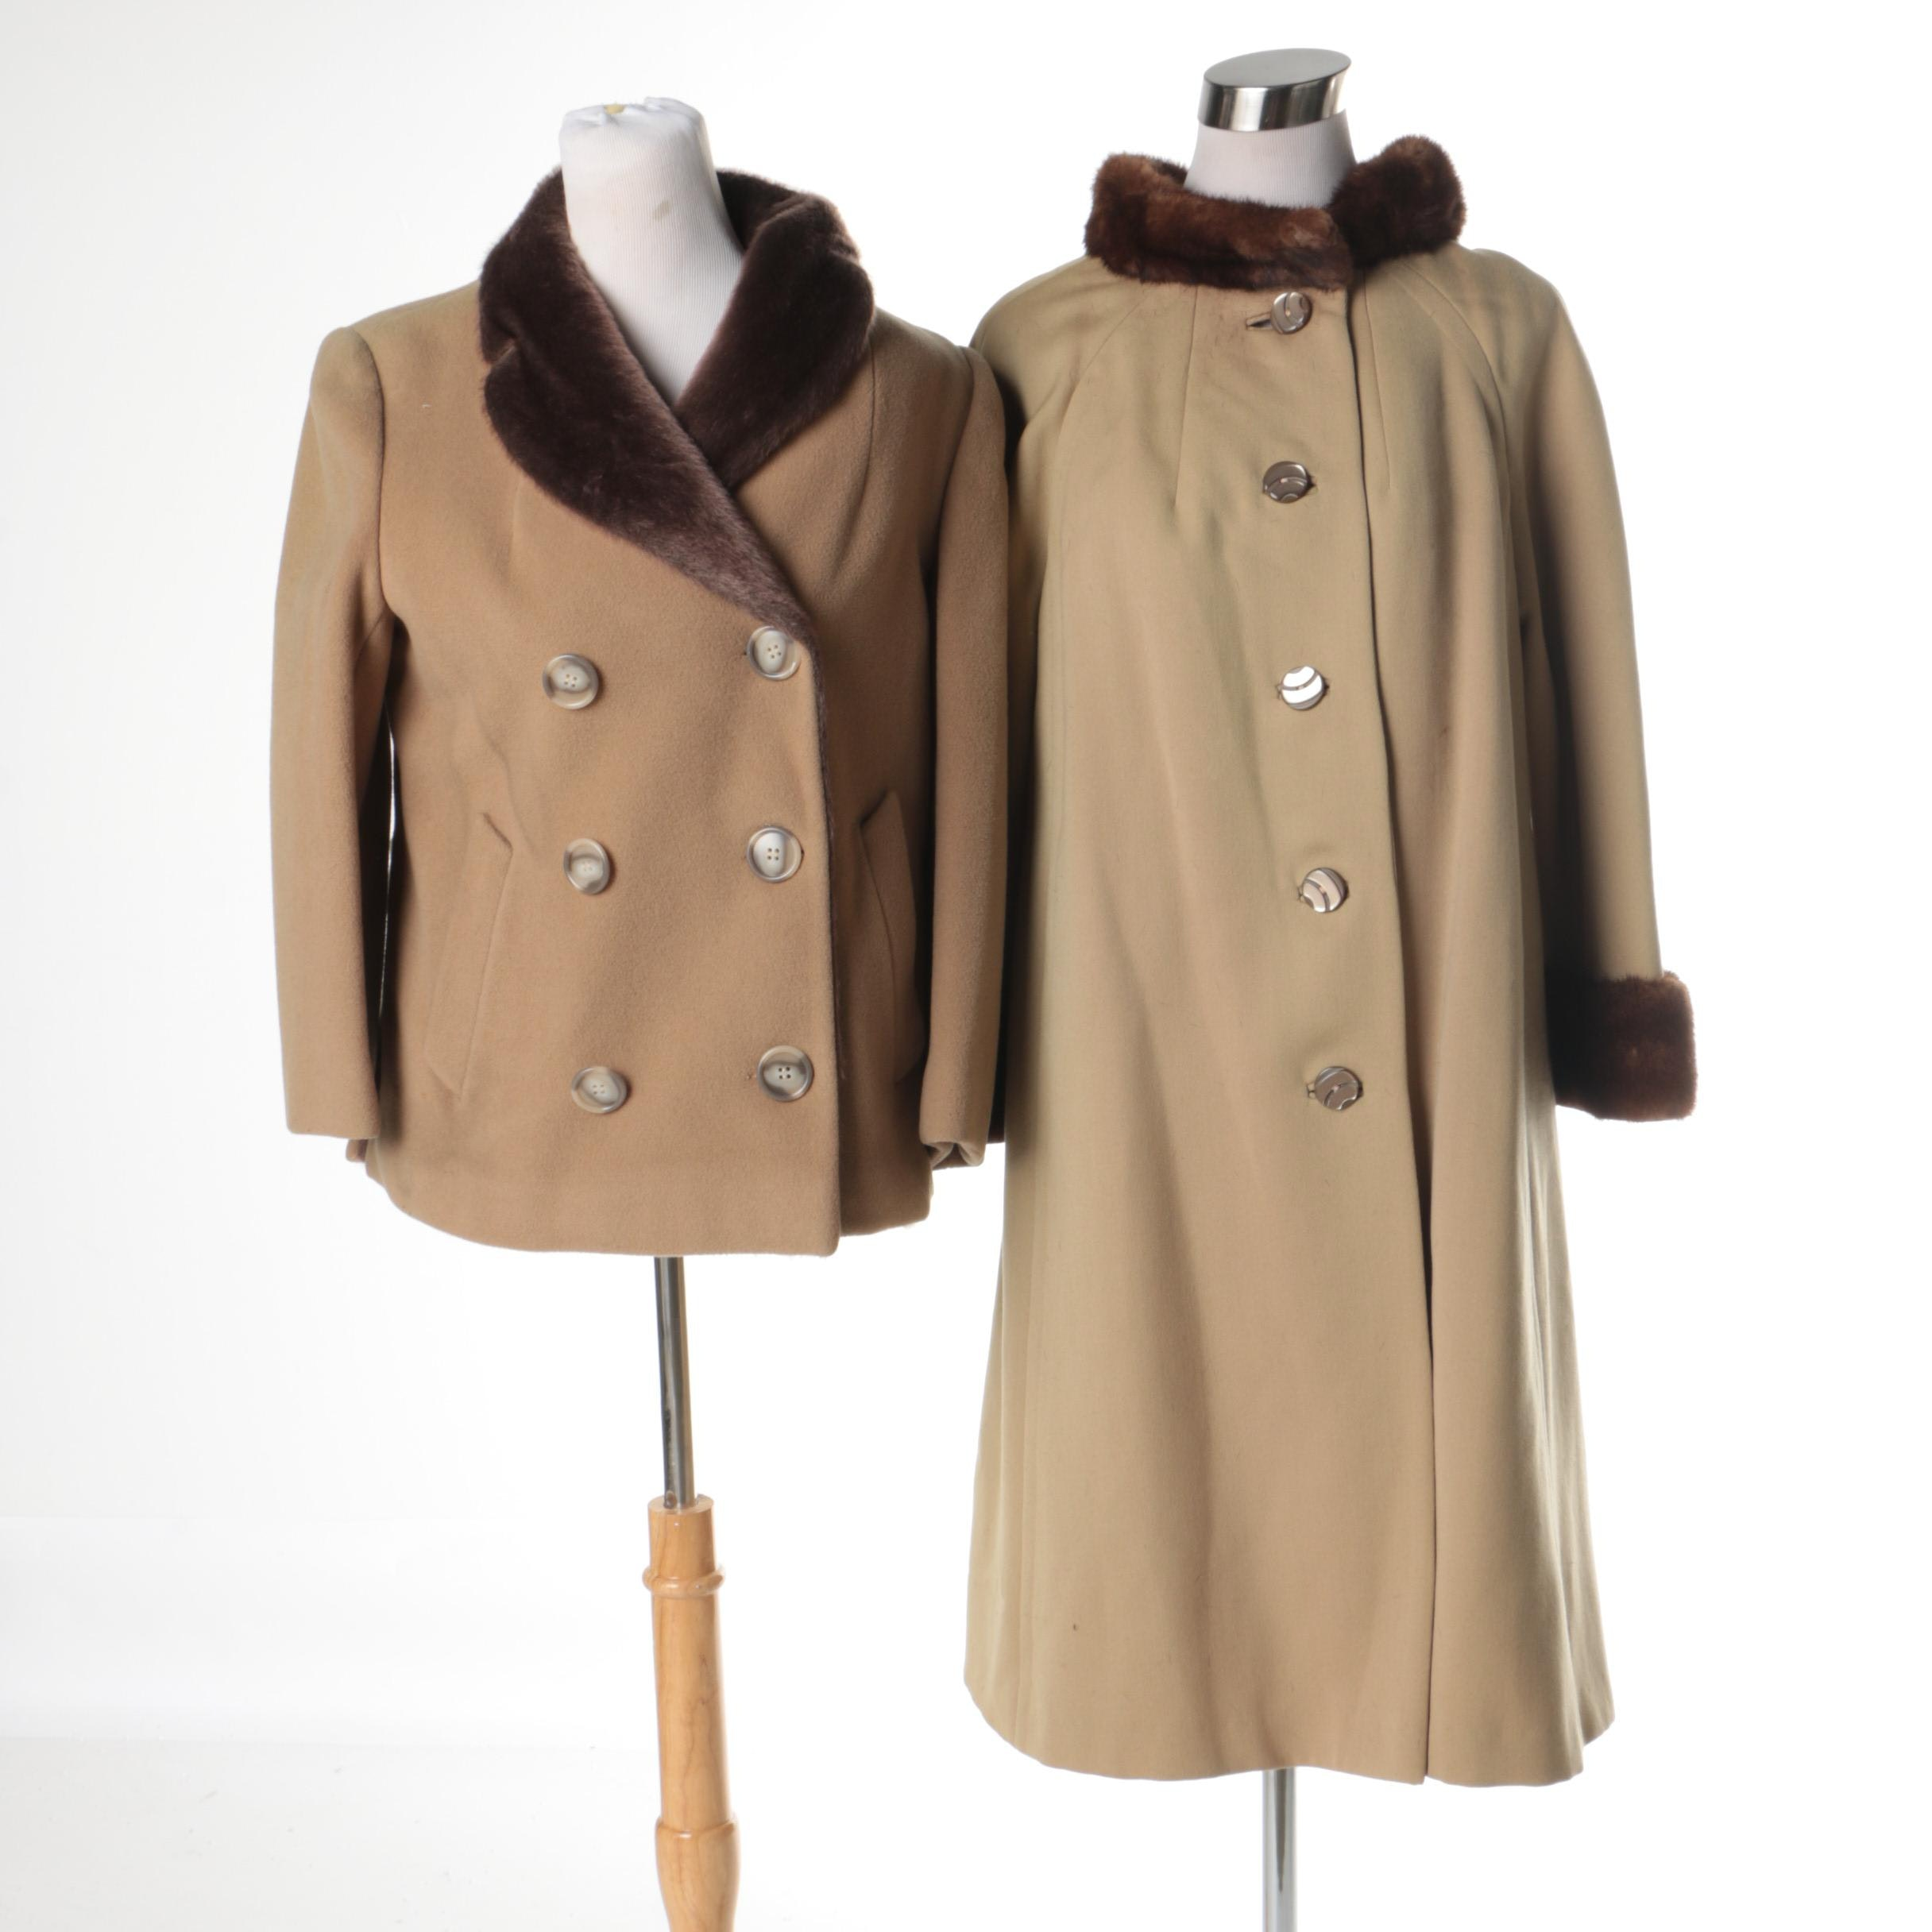 Two Vintage Tan Coats with Mink Fur and Faux Fur Trim